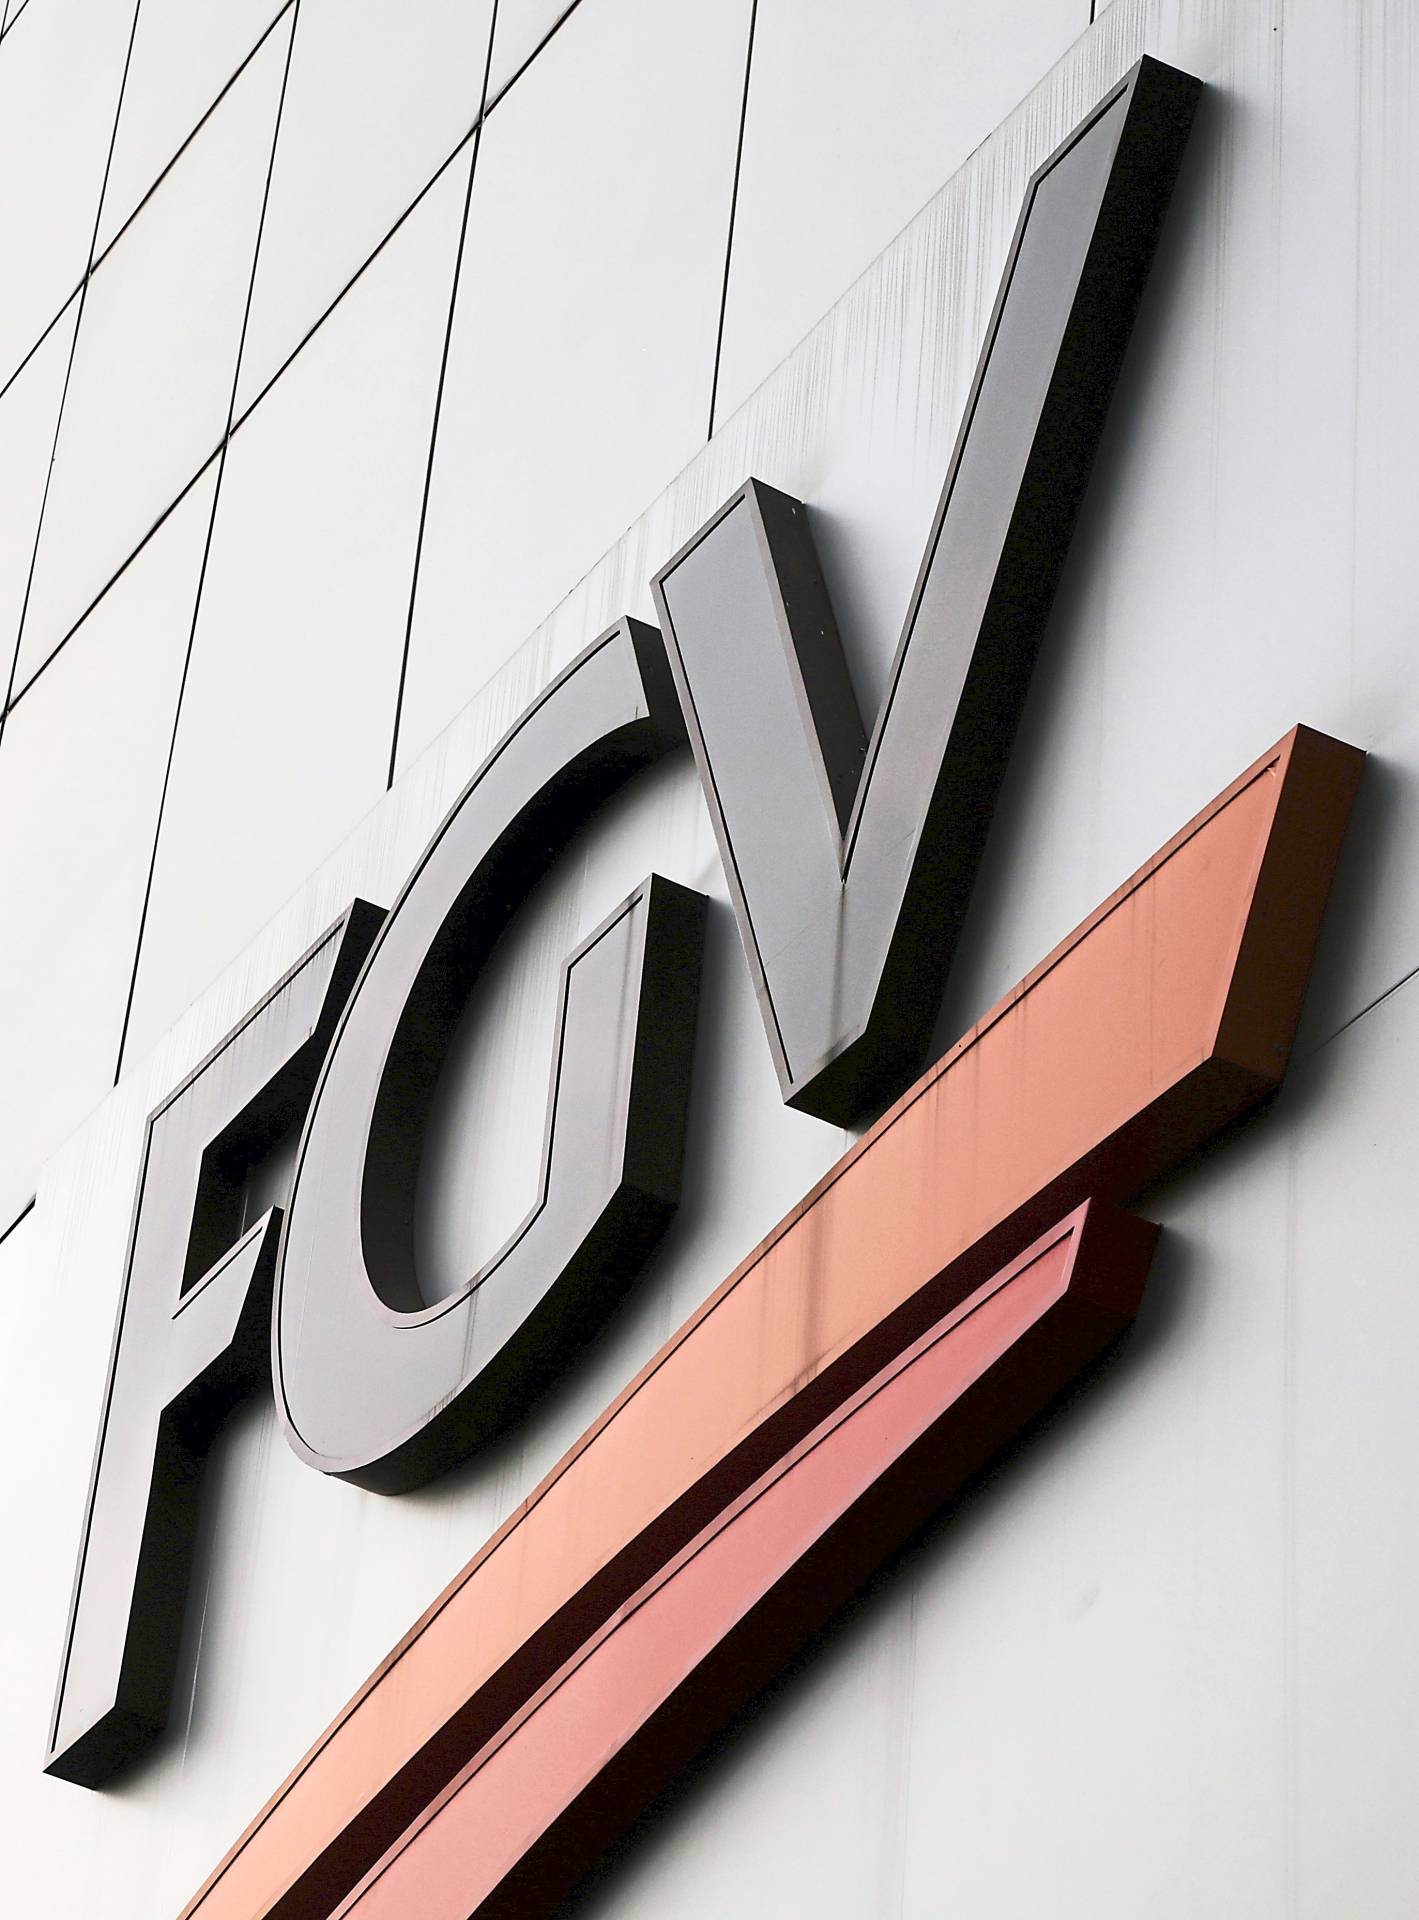 FGV says its businesses, operations are prepared for LLA termination